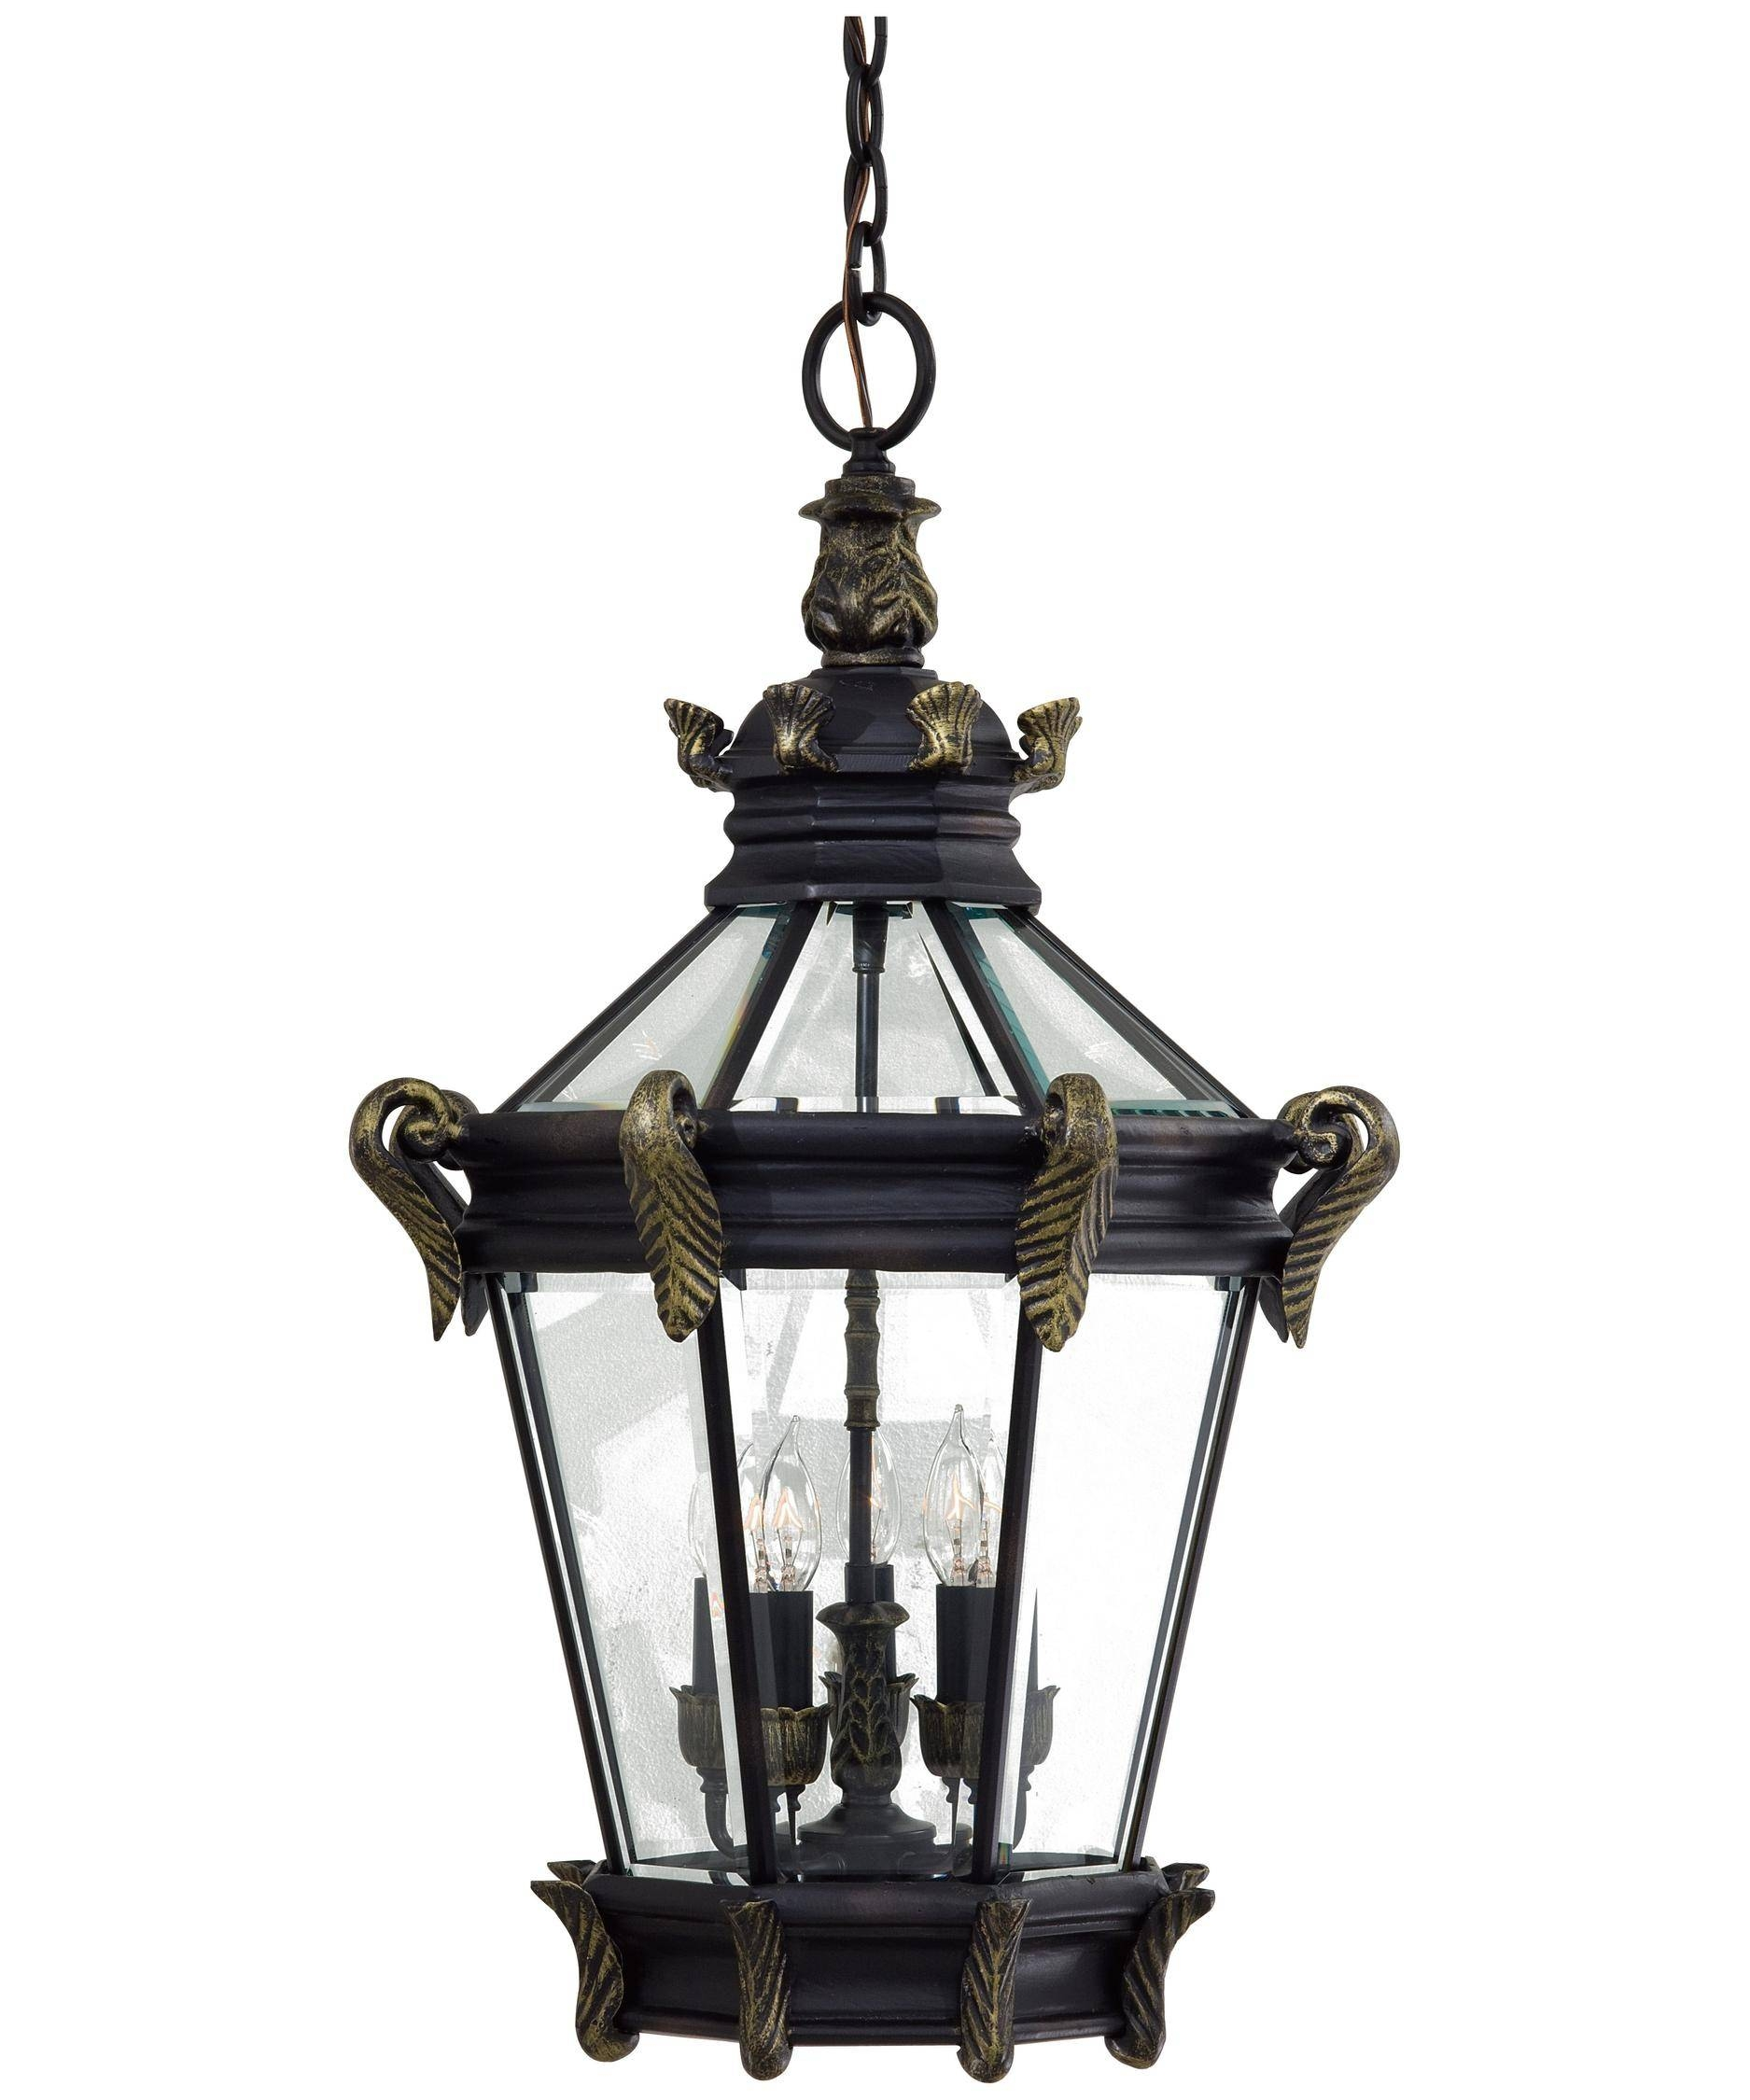 Minka Lavery 8934 Stratford Hall 19 Inch Wide 5 Light Outdoor throughout Minka Lavery Pendant Lights (Image 7 of 15)